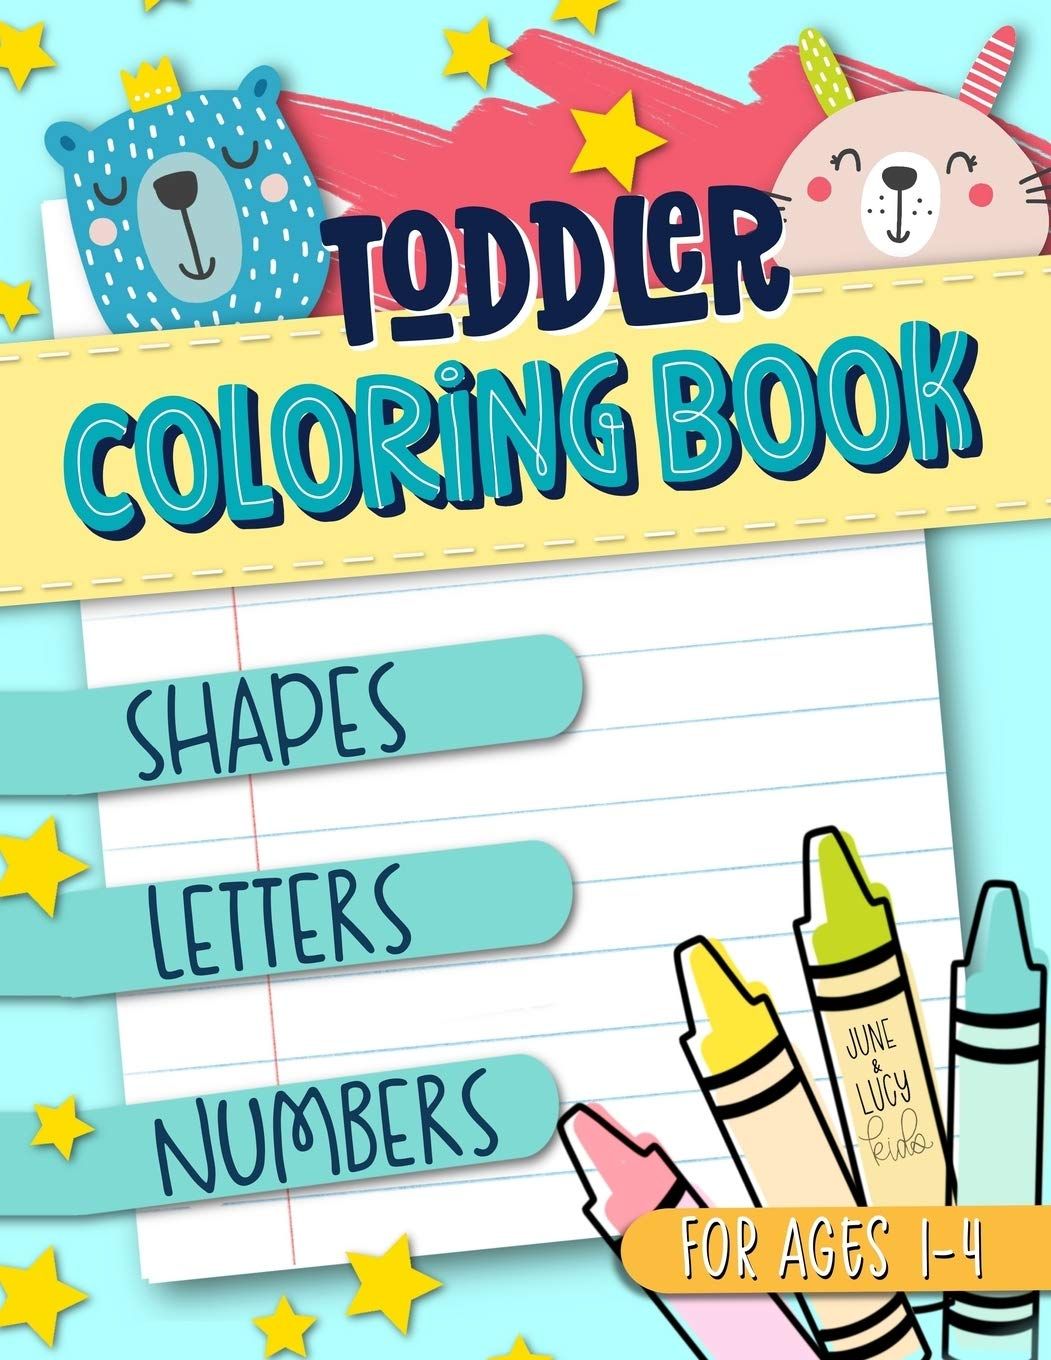 - Toddler Coloring Book For Ages 1-4: Shapes Letters Numbers: June